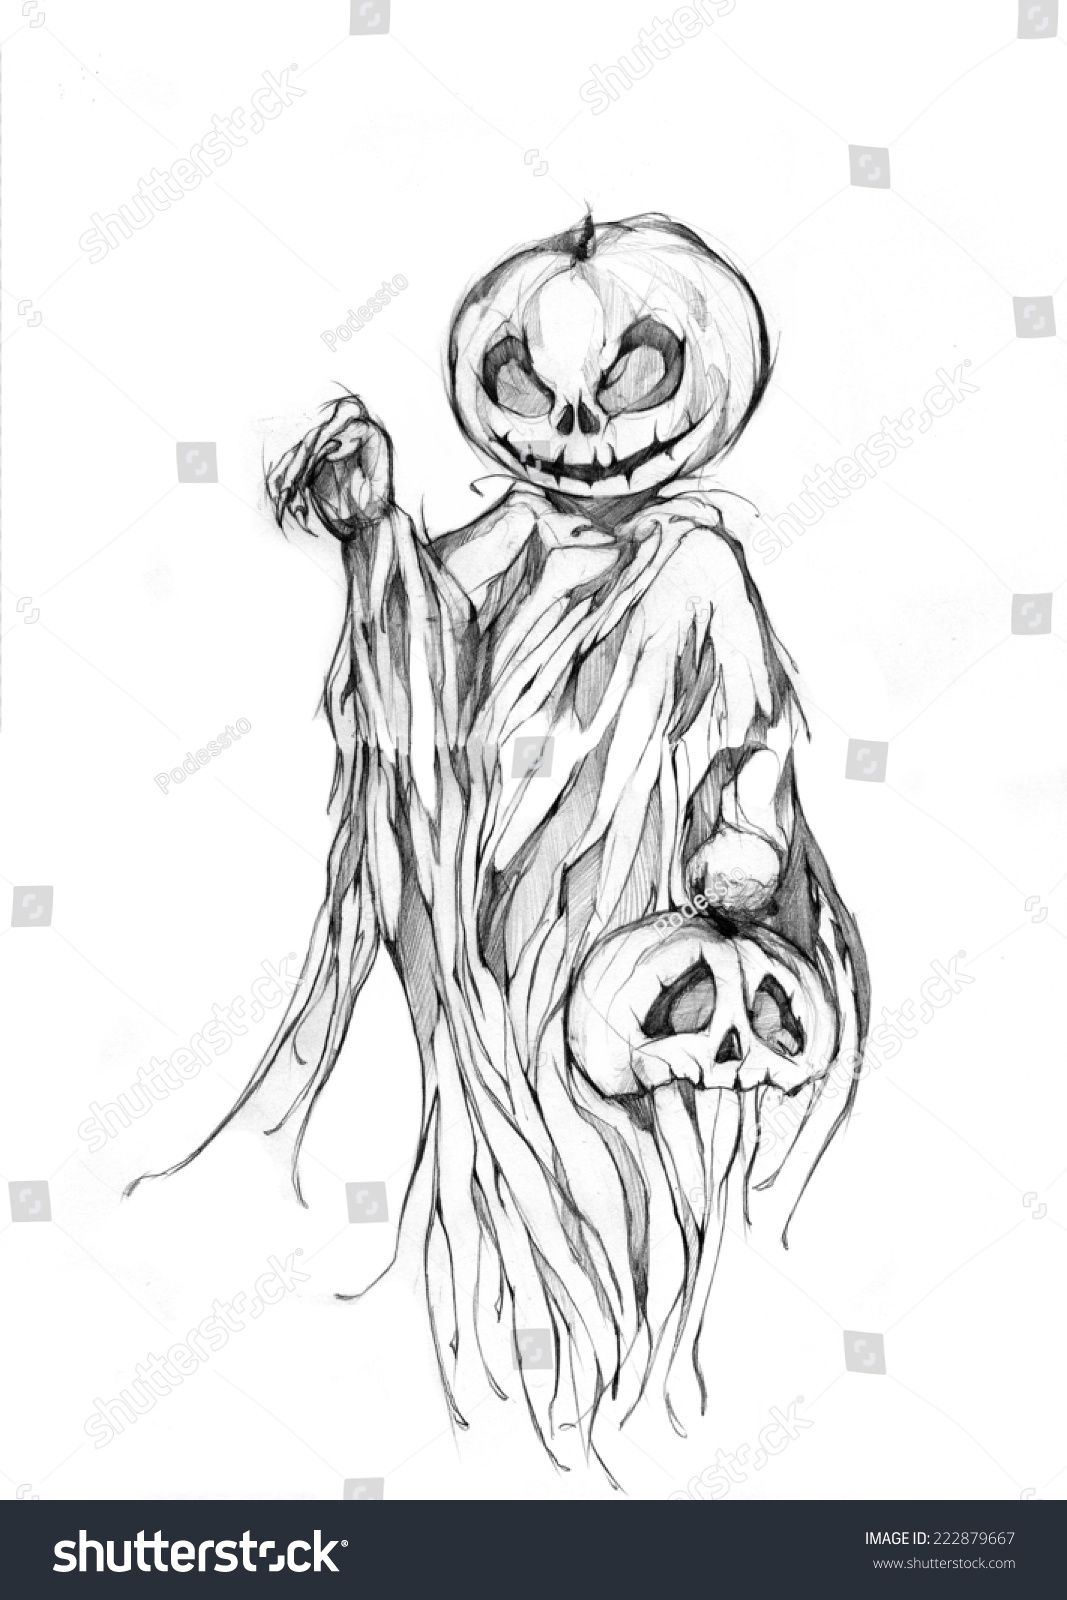 Pencil Drawing Hand Graphics Scary Jack O Halloween Pumpkin